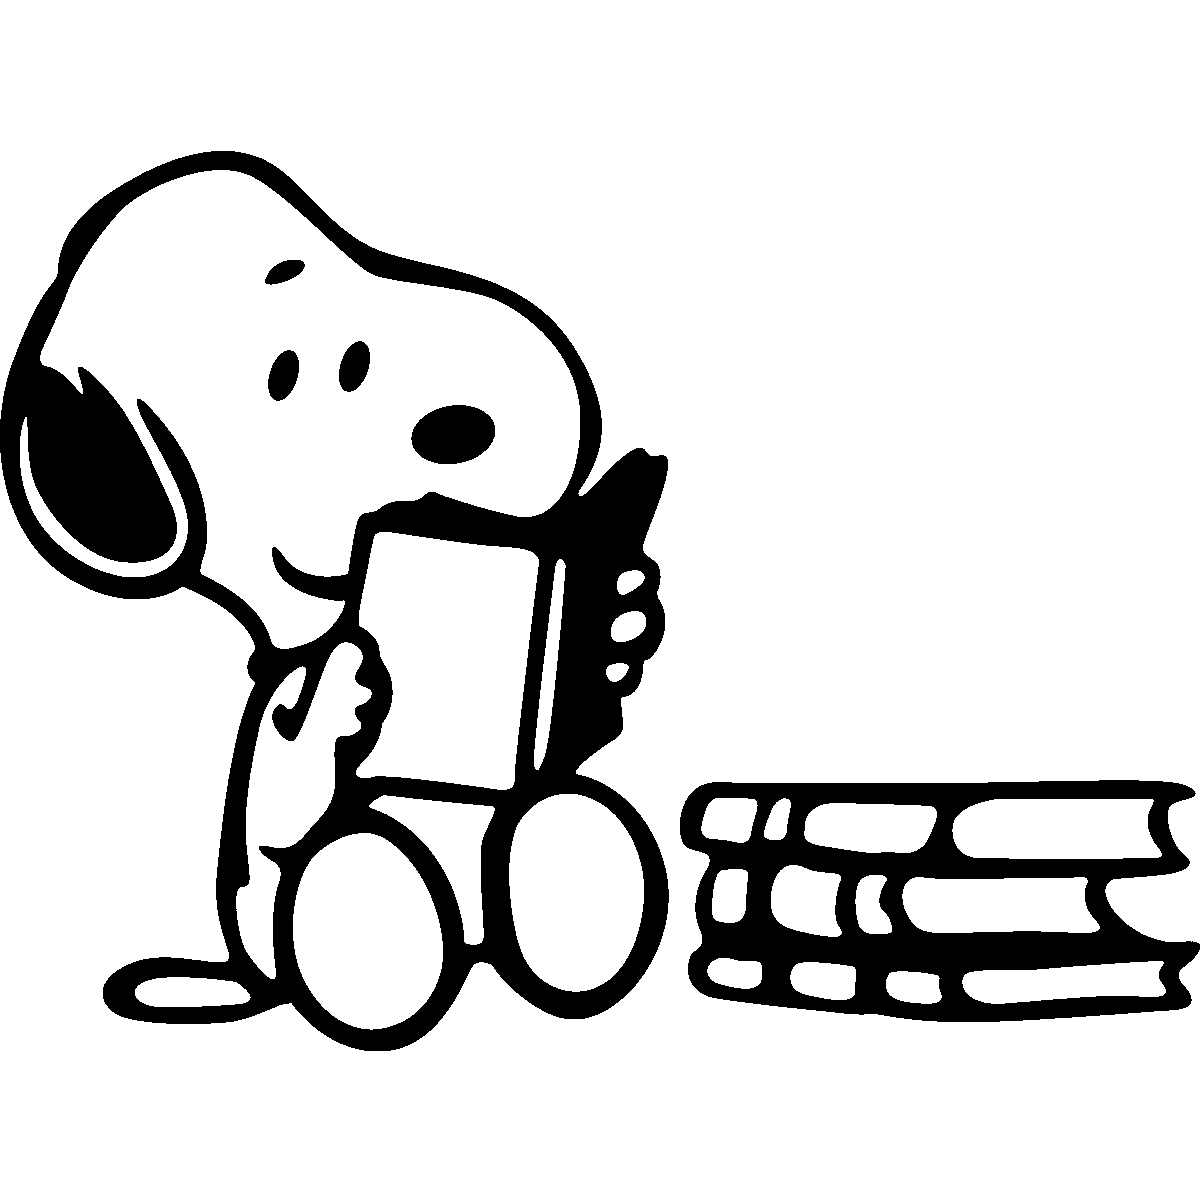 Snoopy reading clipart svg freeuse download Snoopy Reading <3 | Books Belong to Their Readers | Snoopy ... svg freeuse download